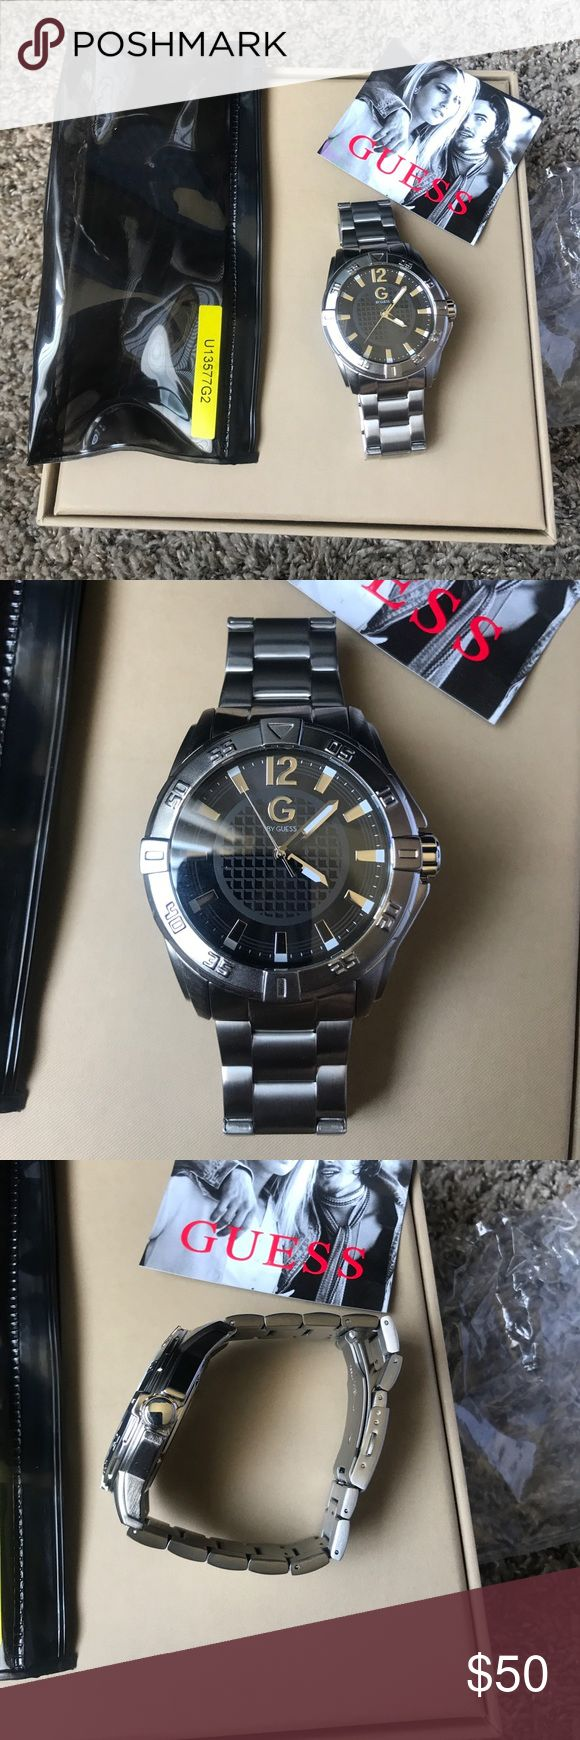 Men's Guess Watch Men's Guess watch New ! In the picure you can se the model number in yellow color ! perfect for A gift comes in a Guess pouch really nice Watch Guess Accessories Watches